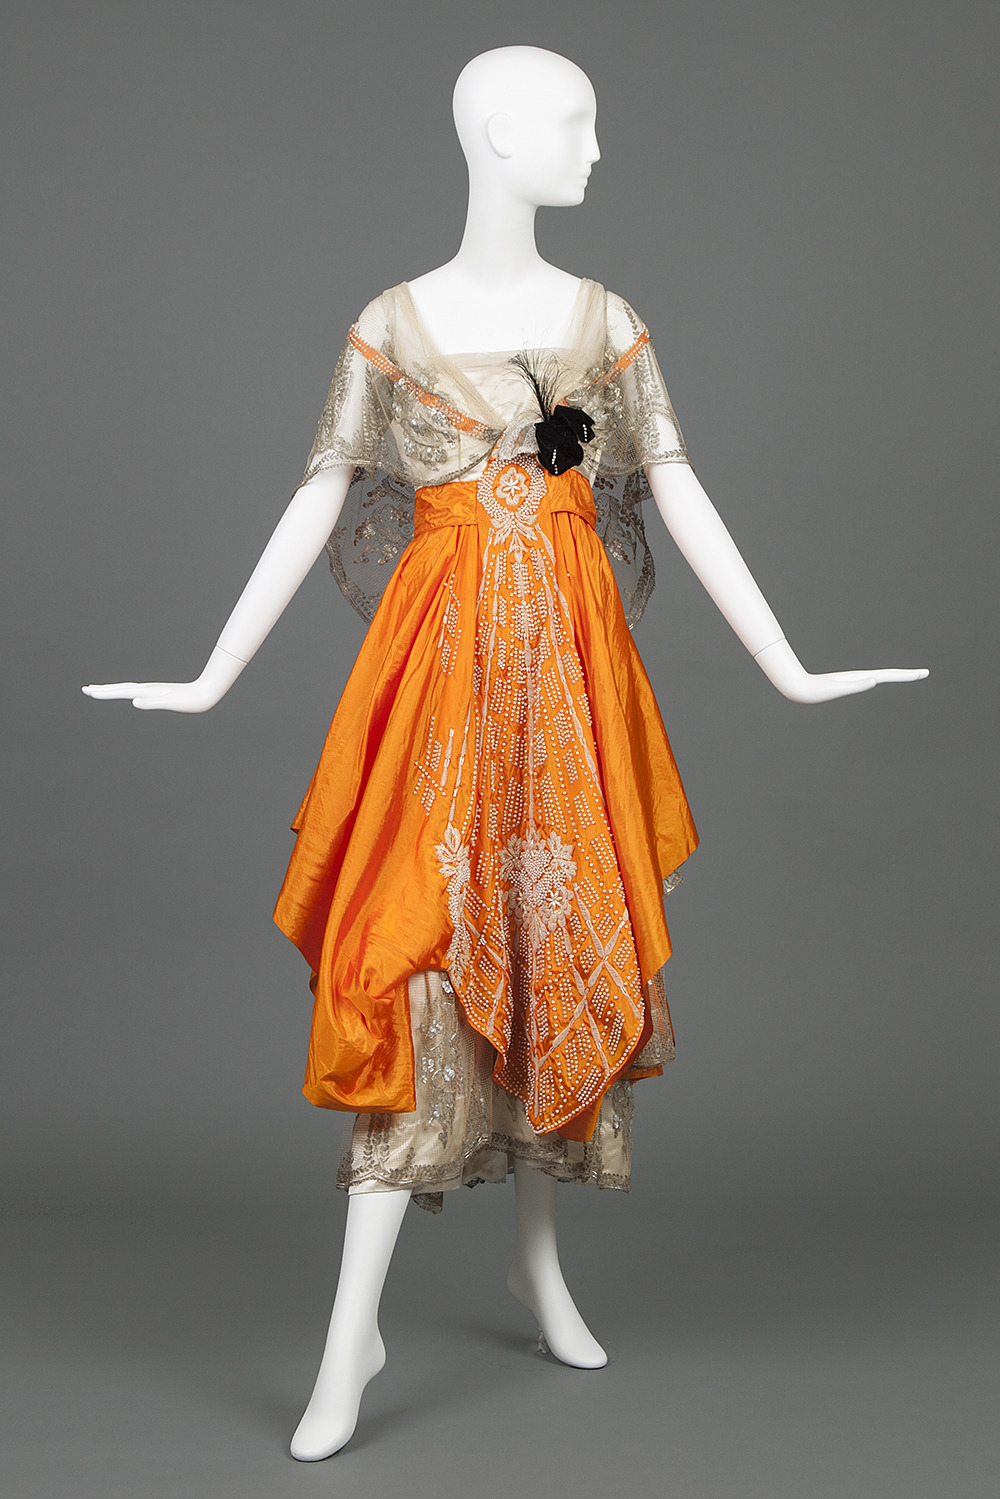 Evening Gown Of Cream Silk Satin and Orange Silk Taffeta, Hollander, L.P., 1916-1917, USA, silk, pearl beads, chenille yarn, aigrette feathers, Goldstein Museum of Design 1982.016.015 detail